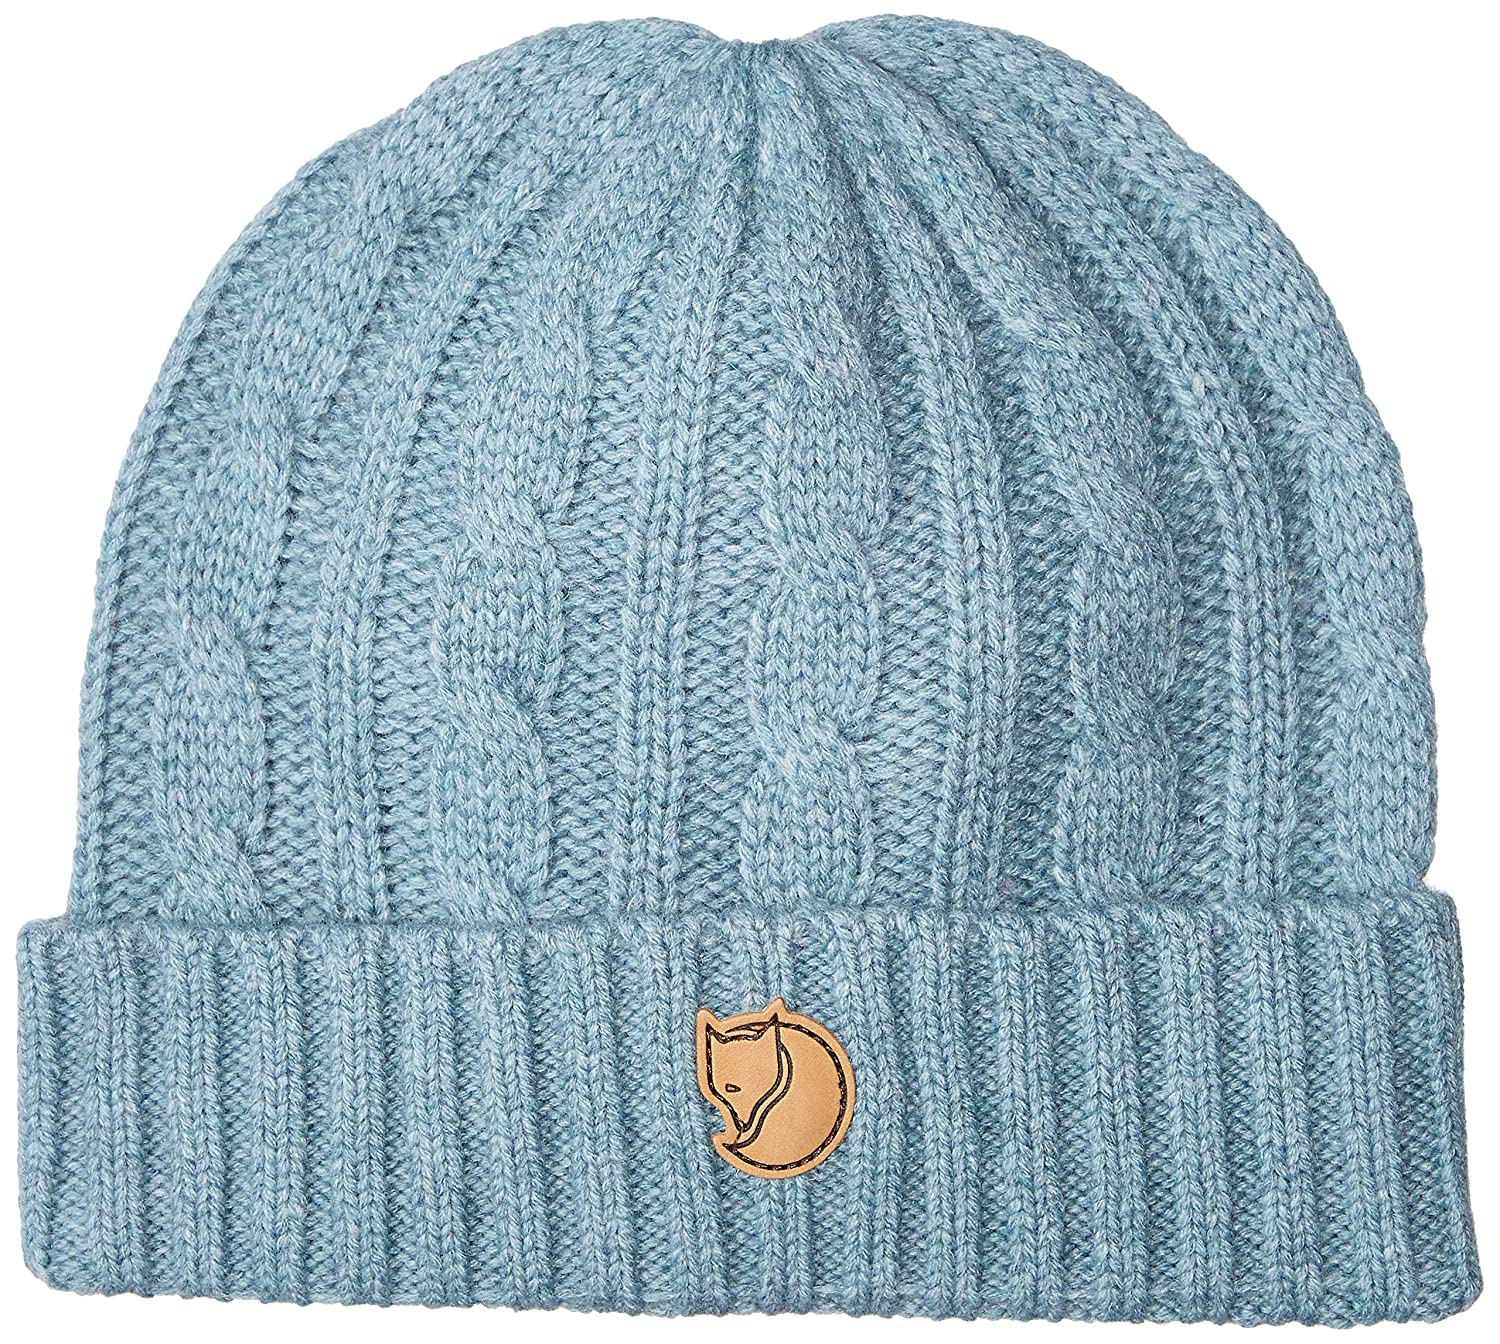 2cc8c3832165d Fjallraven - Braided Knit Hat: Fjallraven: Amazon.ca: Clothing & Accessories